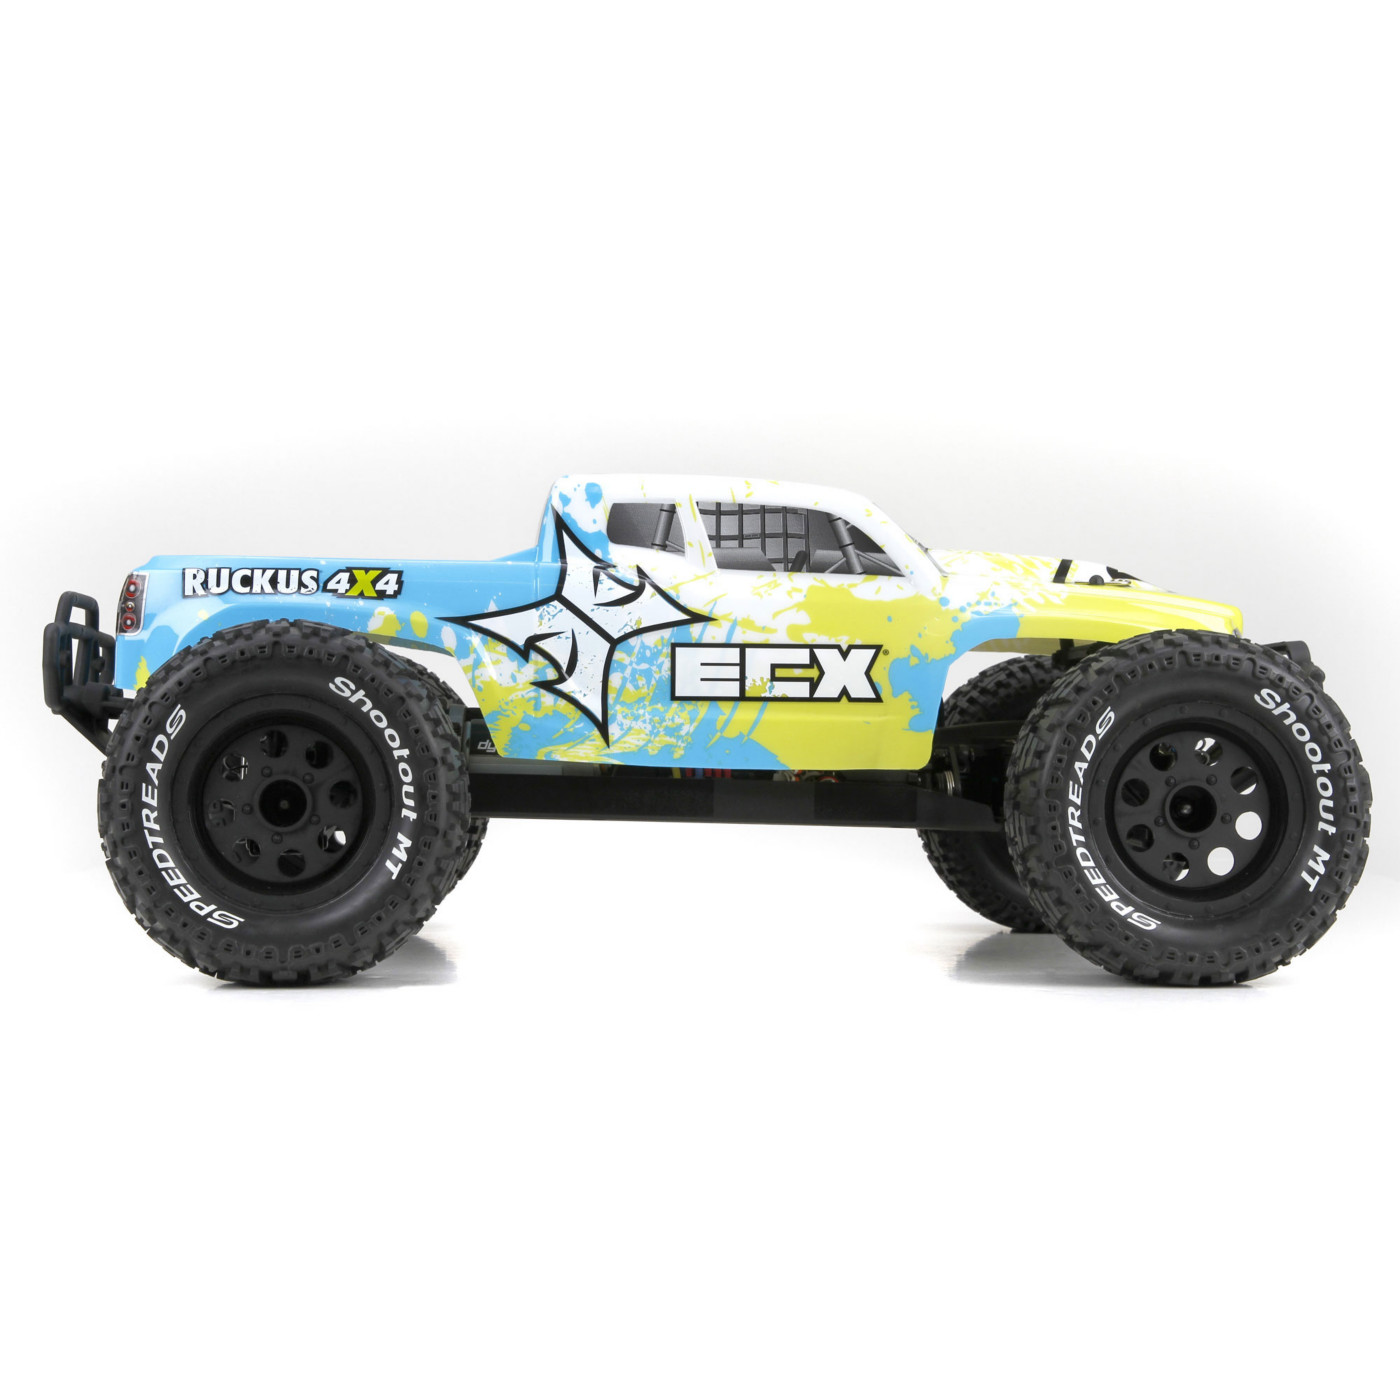 ECX 03042 1/10 Ruckus 4wd Monster Truck Brushed: Ready-to-Run